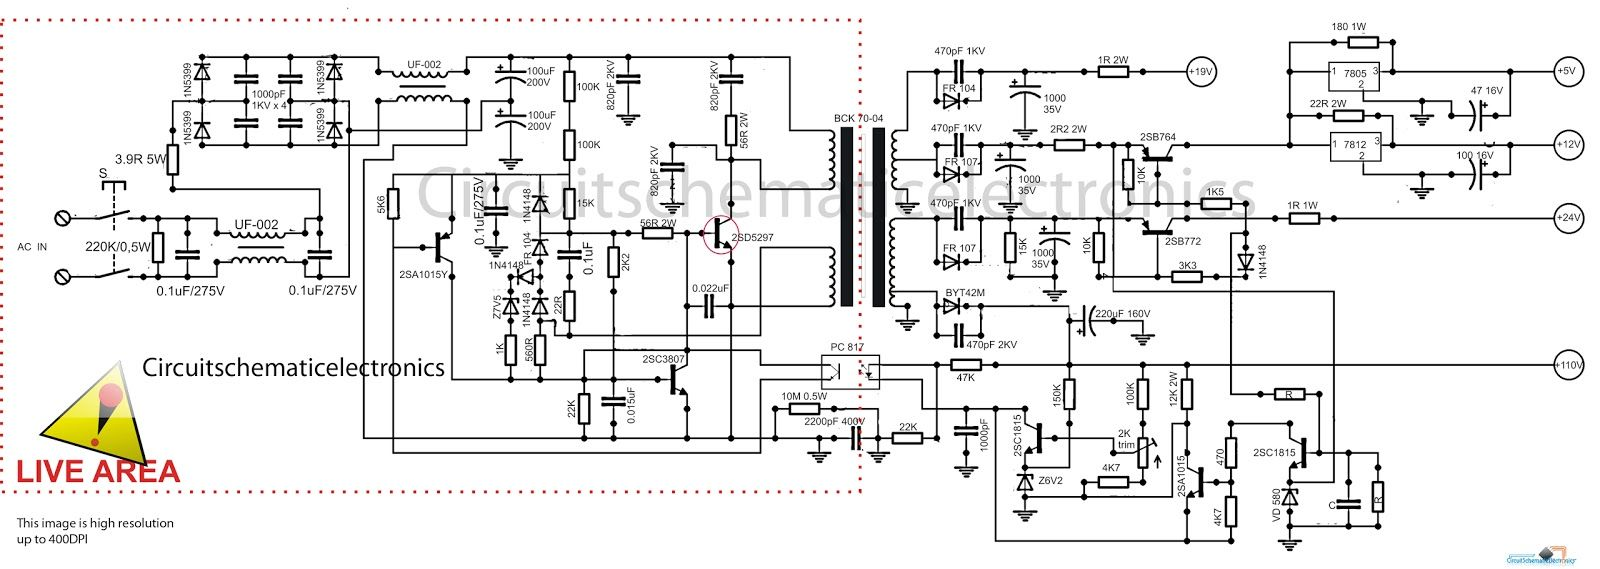 medium resolution of switching power suplly for color television circuit electronic circuit